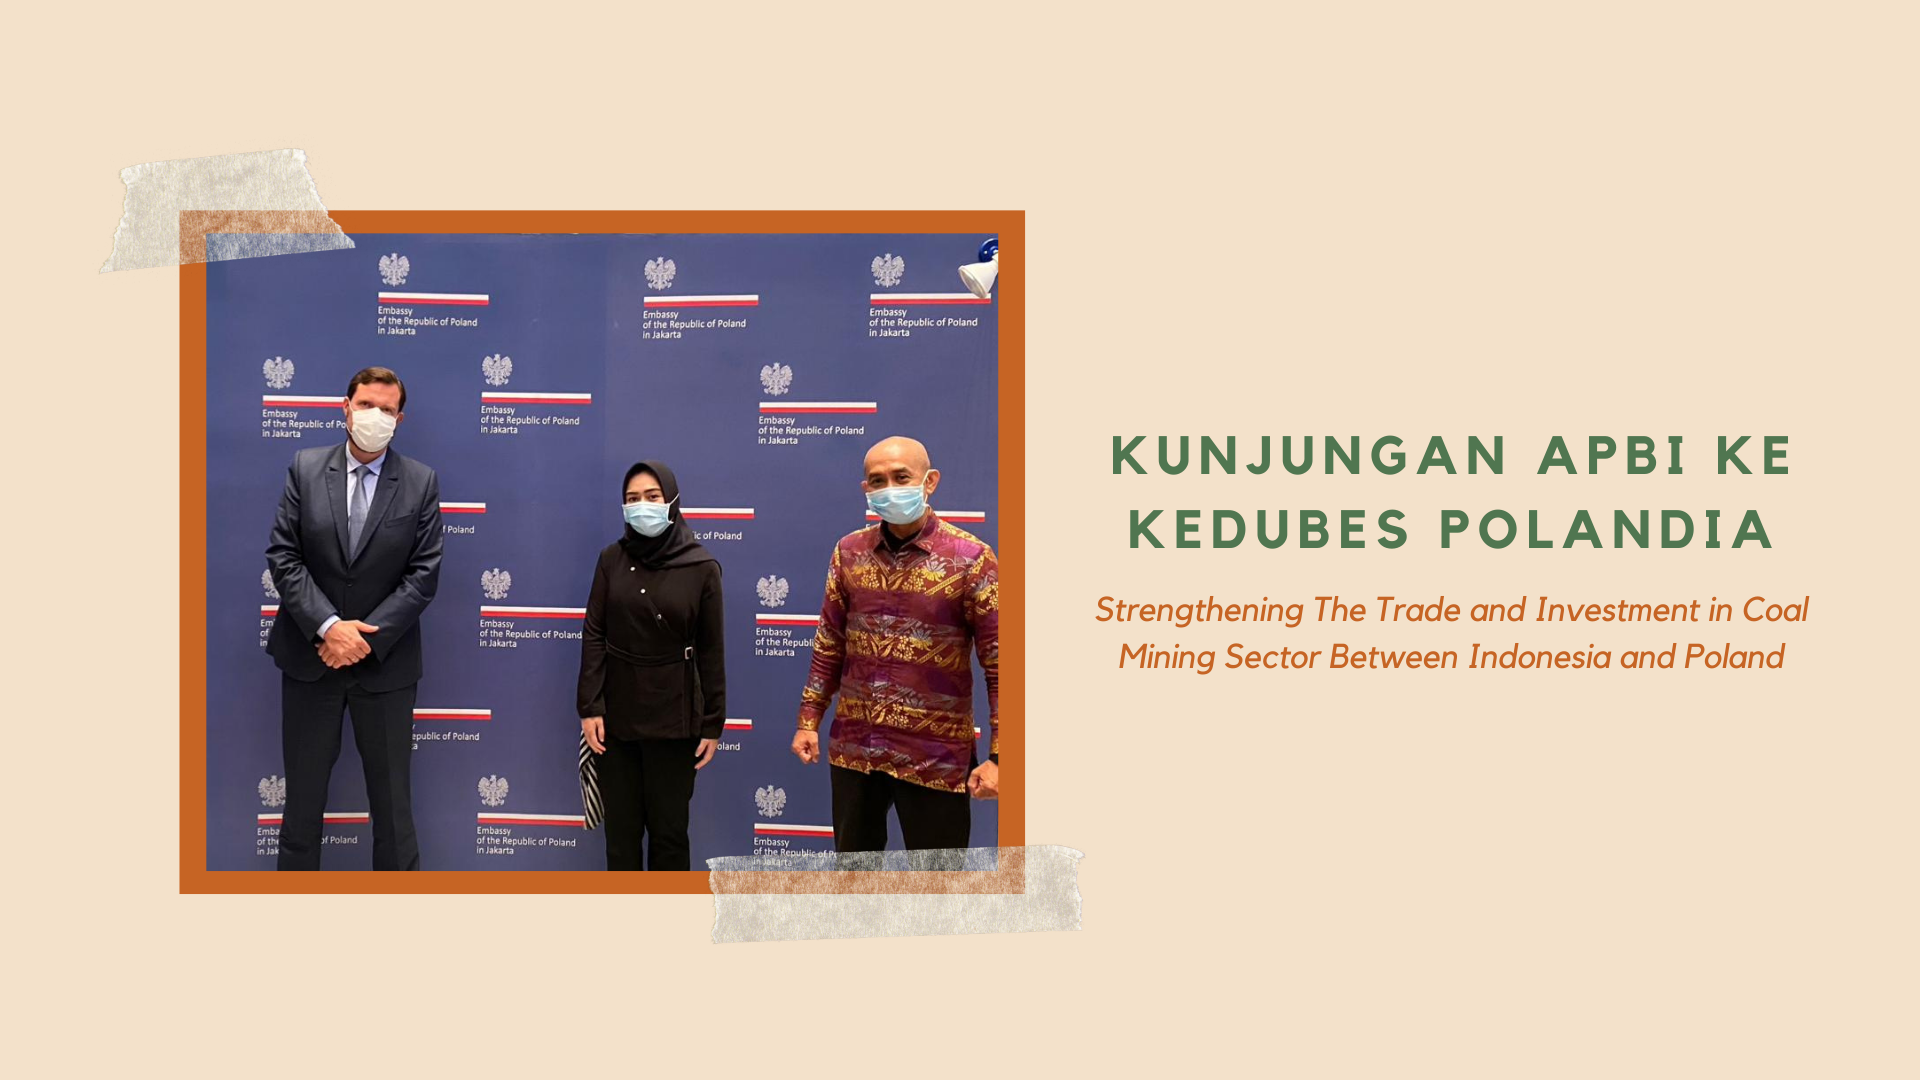 Strengthening The Trade and Investment in Coal Mining Sector Between Indonesia and Poland